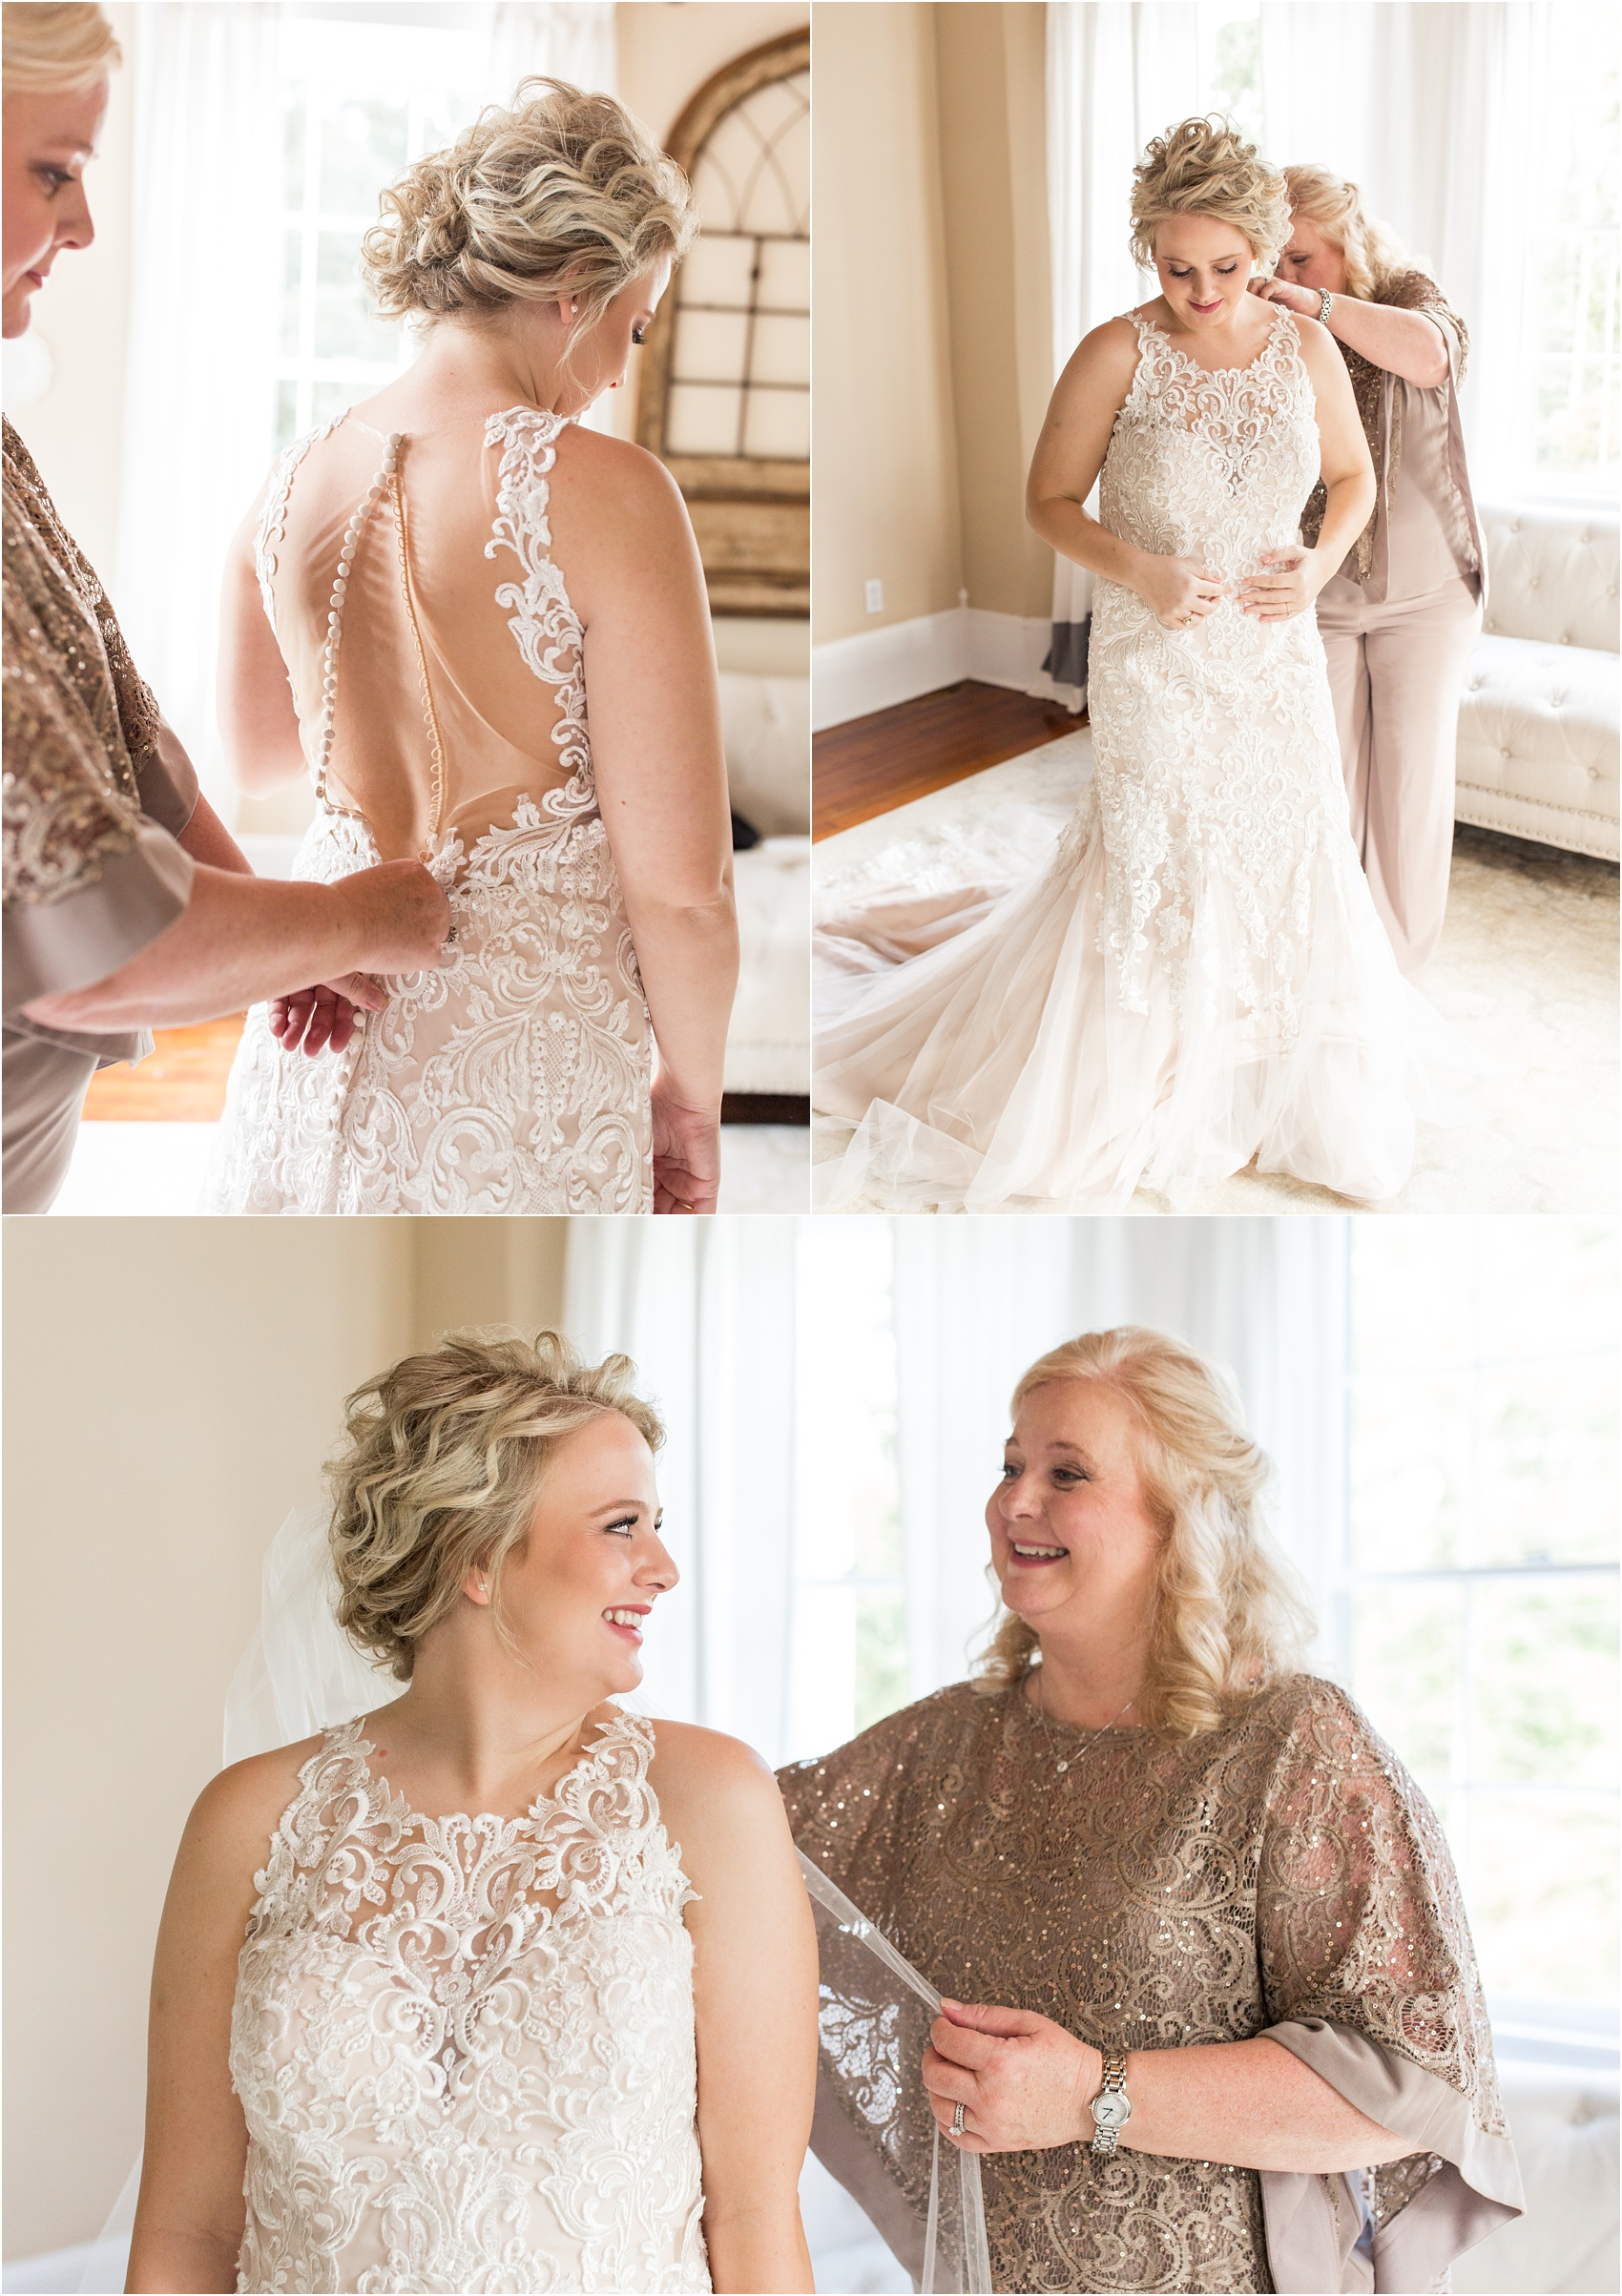 Savannah Eve Photography- Cannon-Gossett Wedding- Sneak Peek-9.jpg